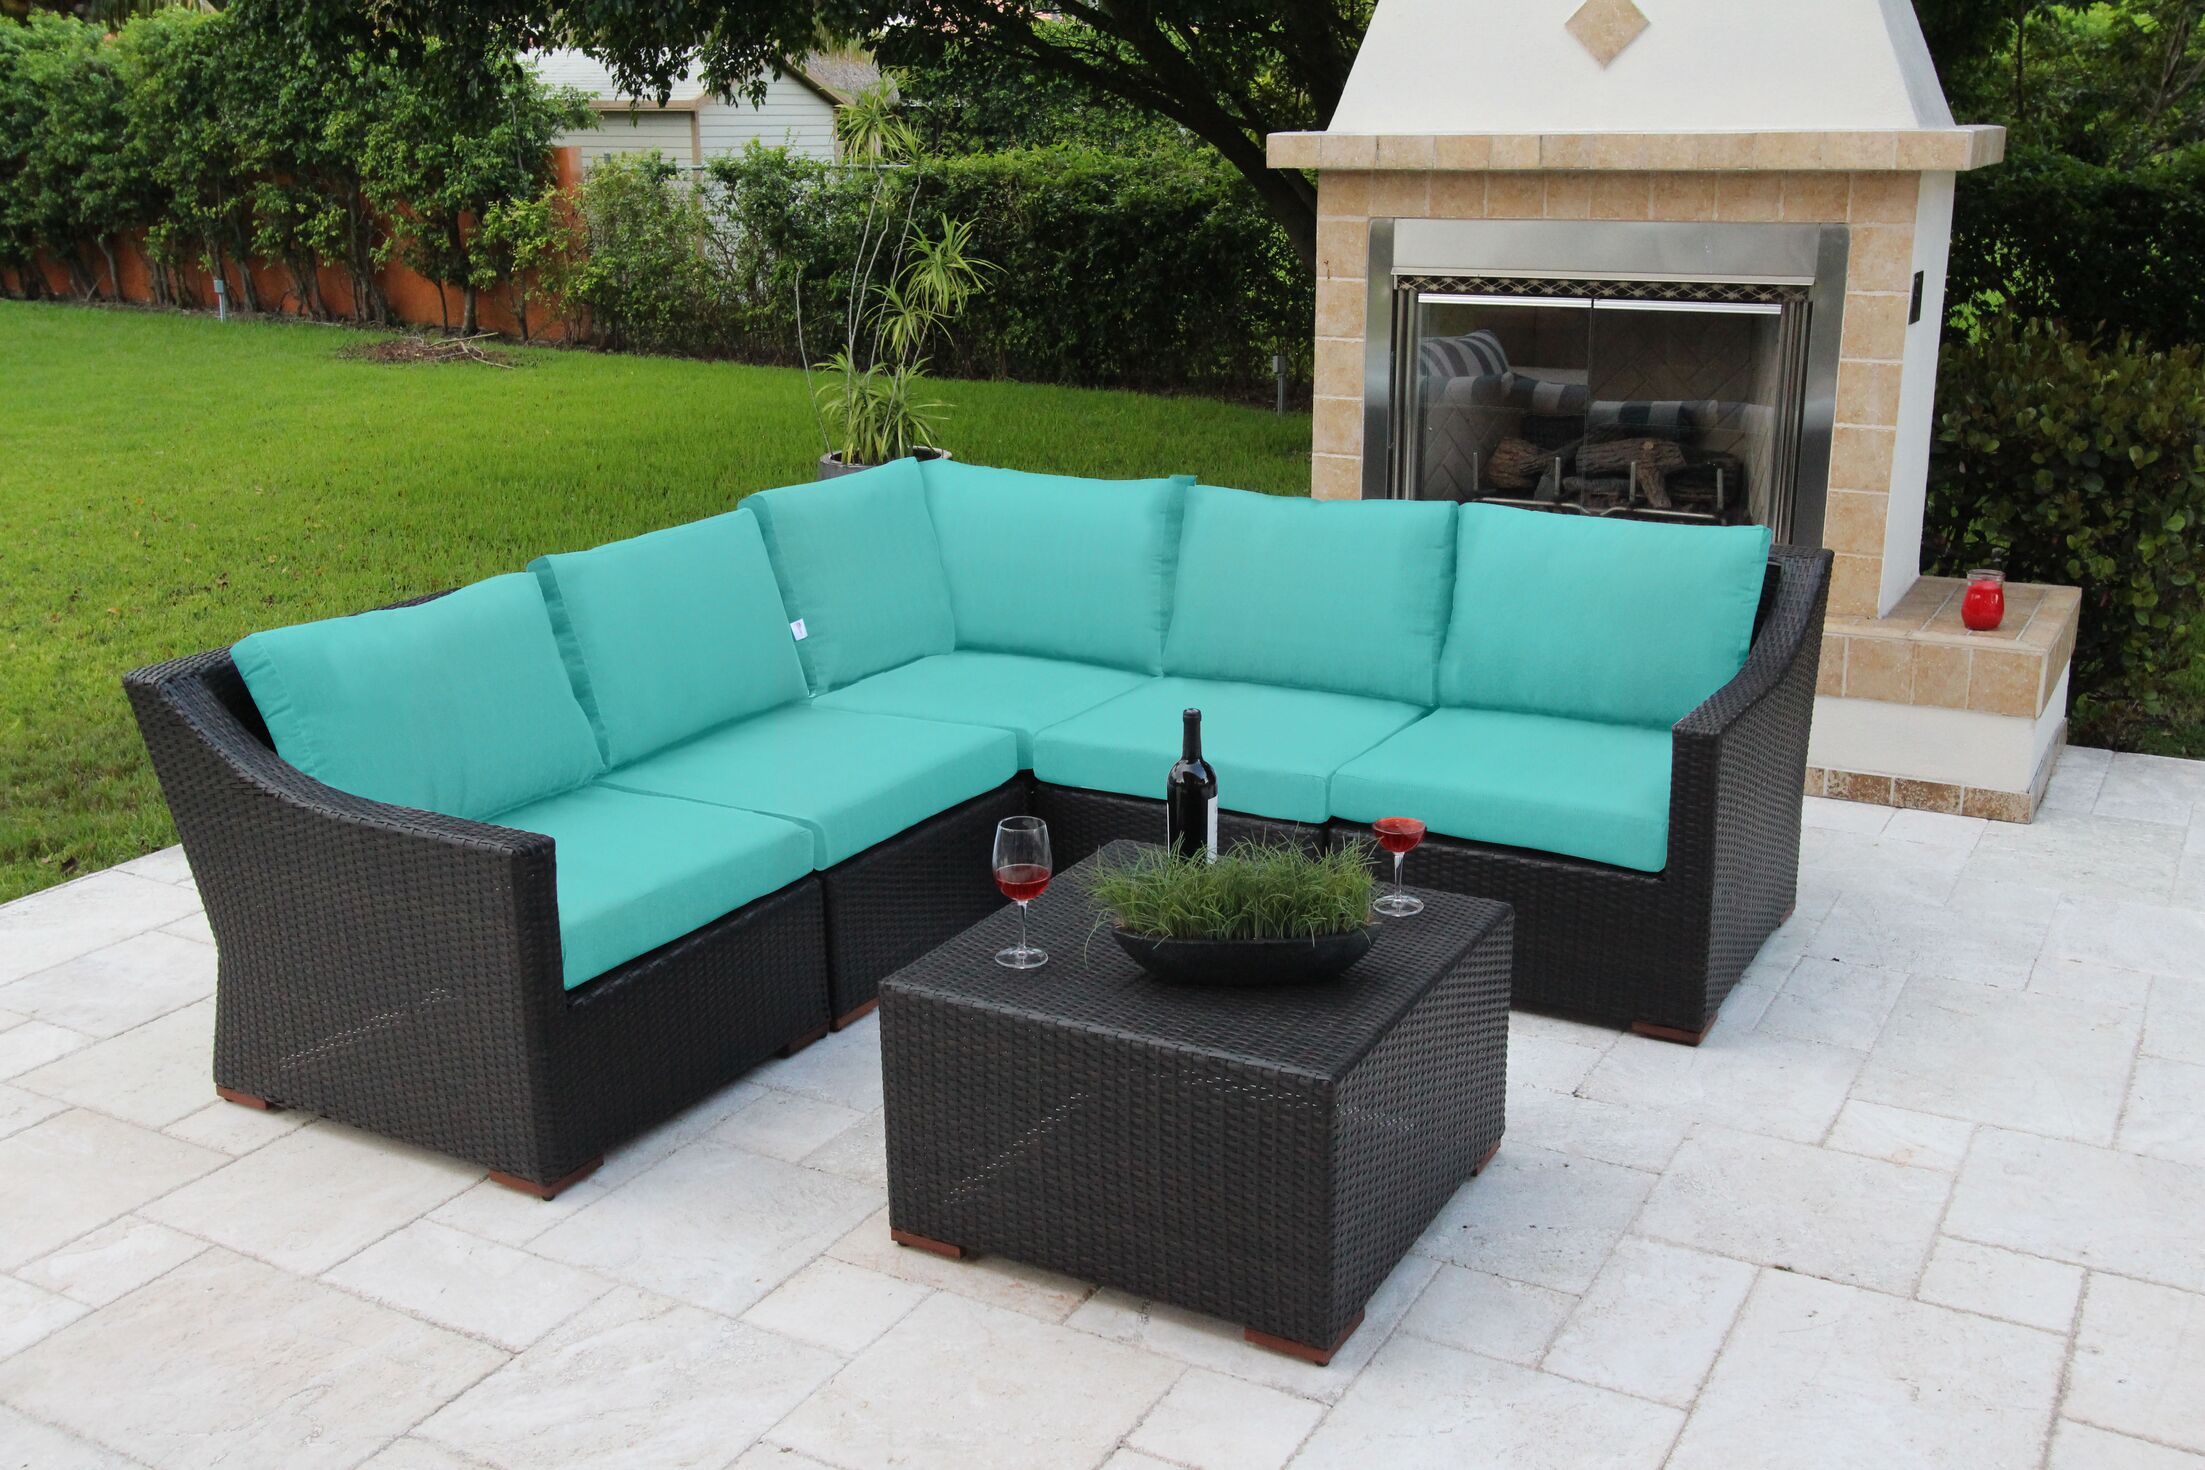 Marcelo 6 Piece Sunbrella Sectional Set with Cushions Fabric: Blue - Canvas Aruba